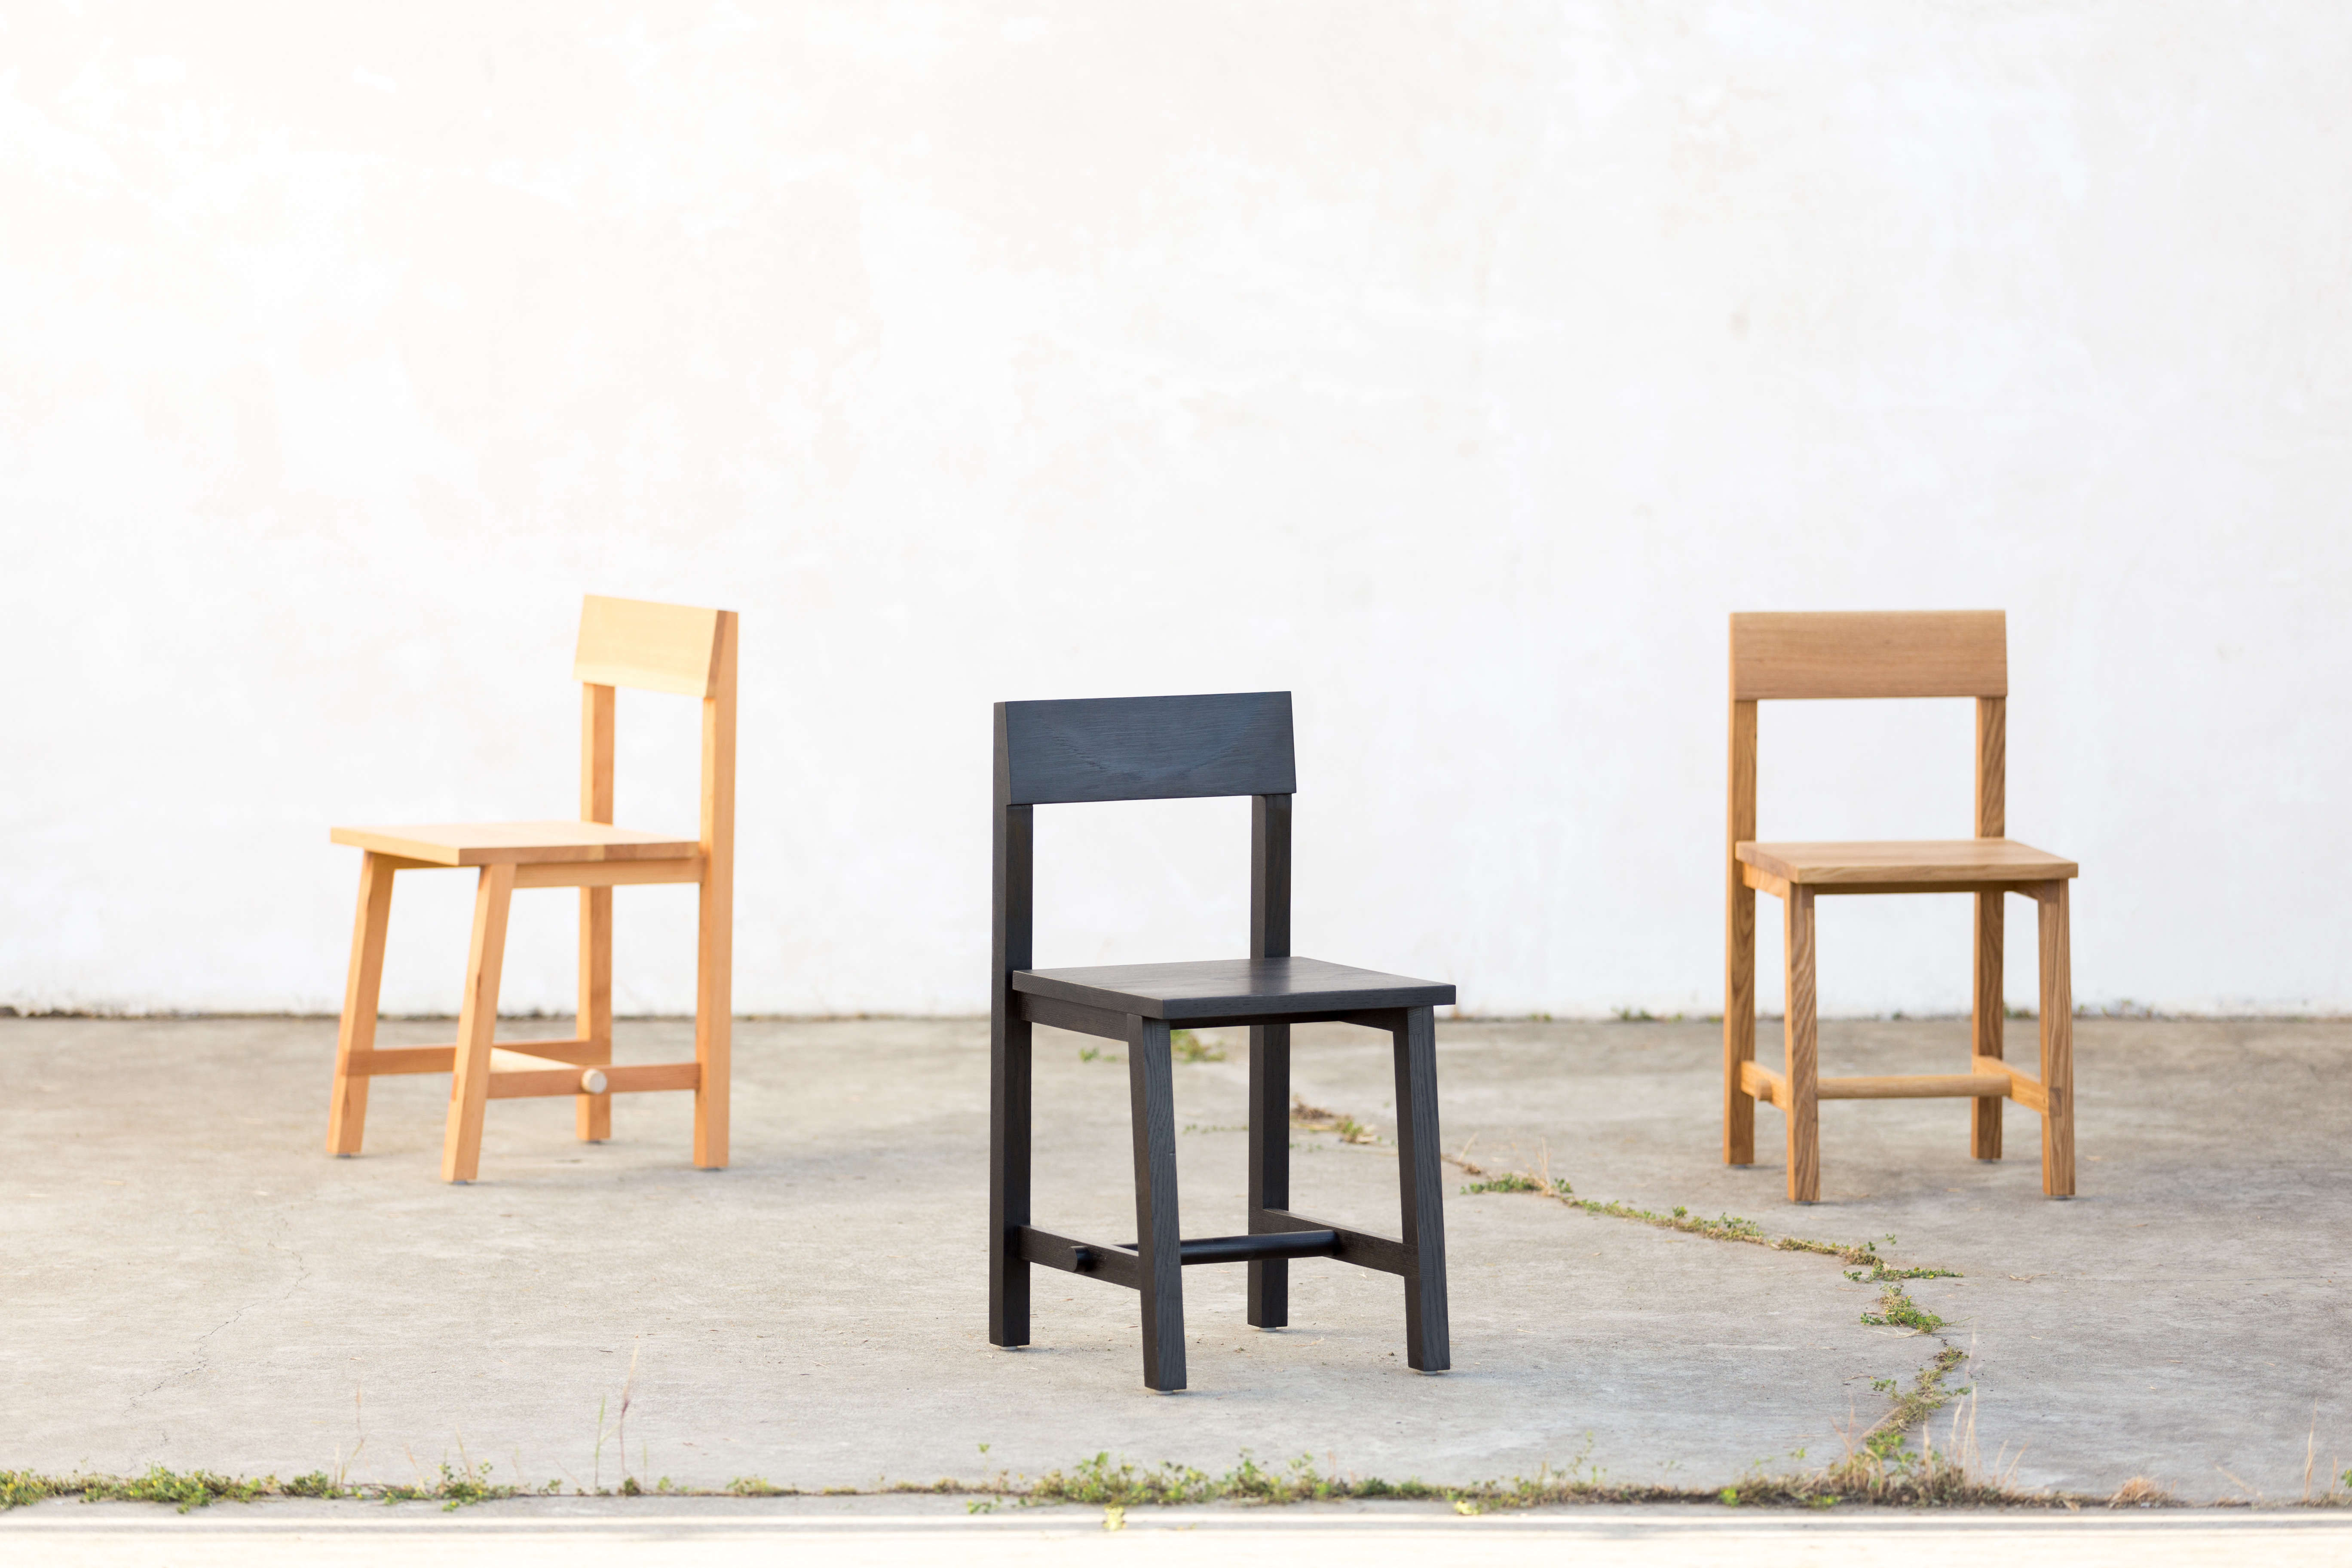 Dowel Dining Chairs in Douglas fir, blackened oak, and natural white oak.